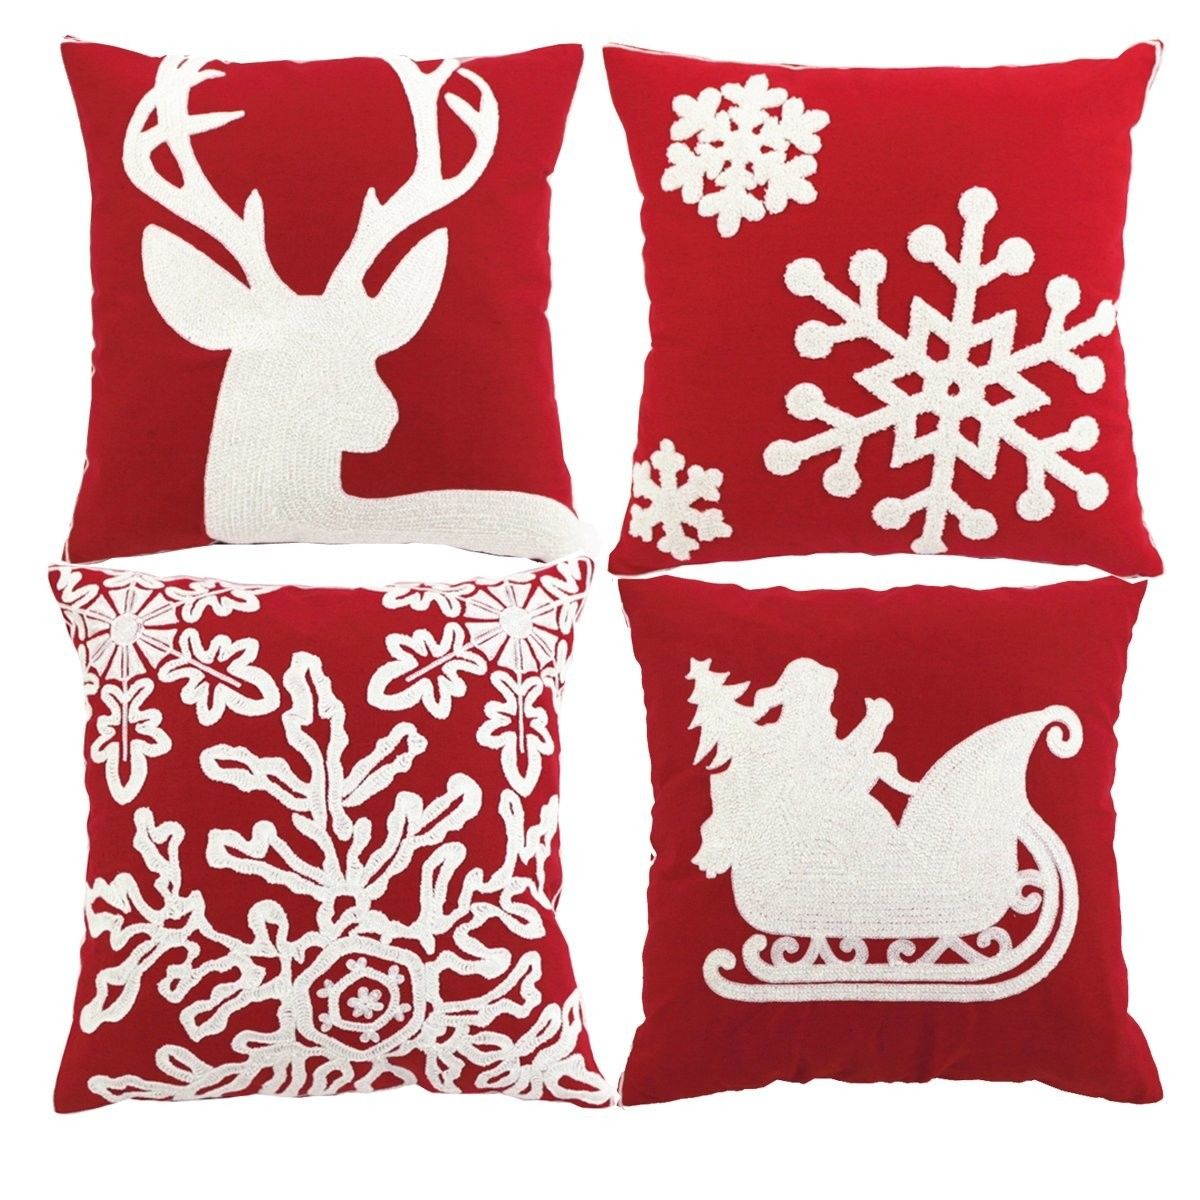 Enipate 45*45cm Christmas Style 100% Cotton Canves Wool Embroidery Christmas Sofa Cushio ...